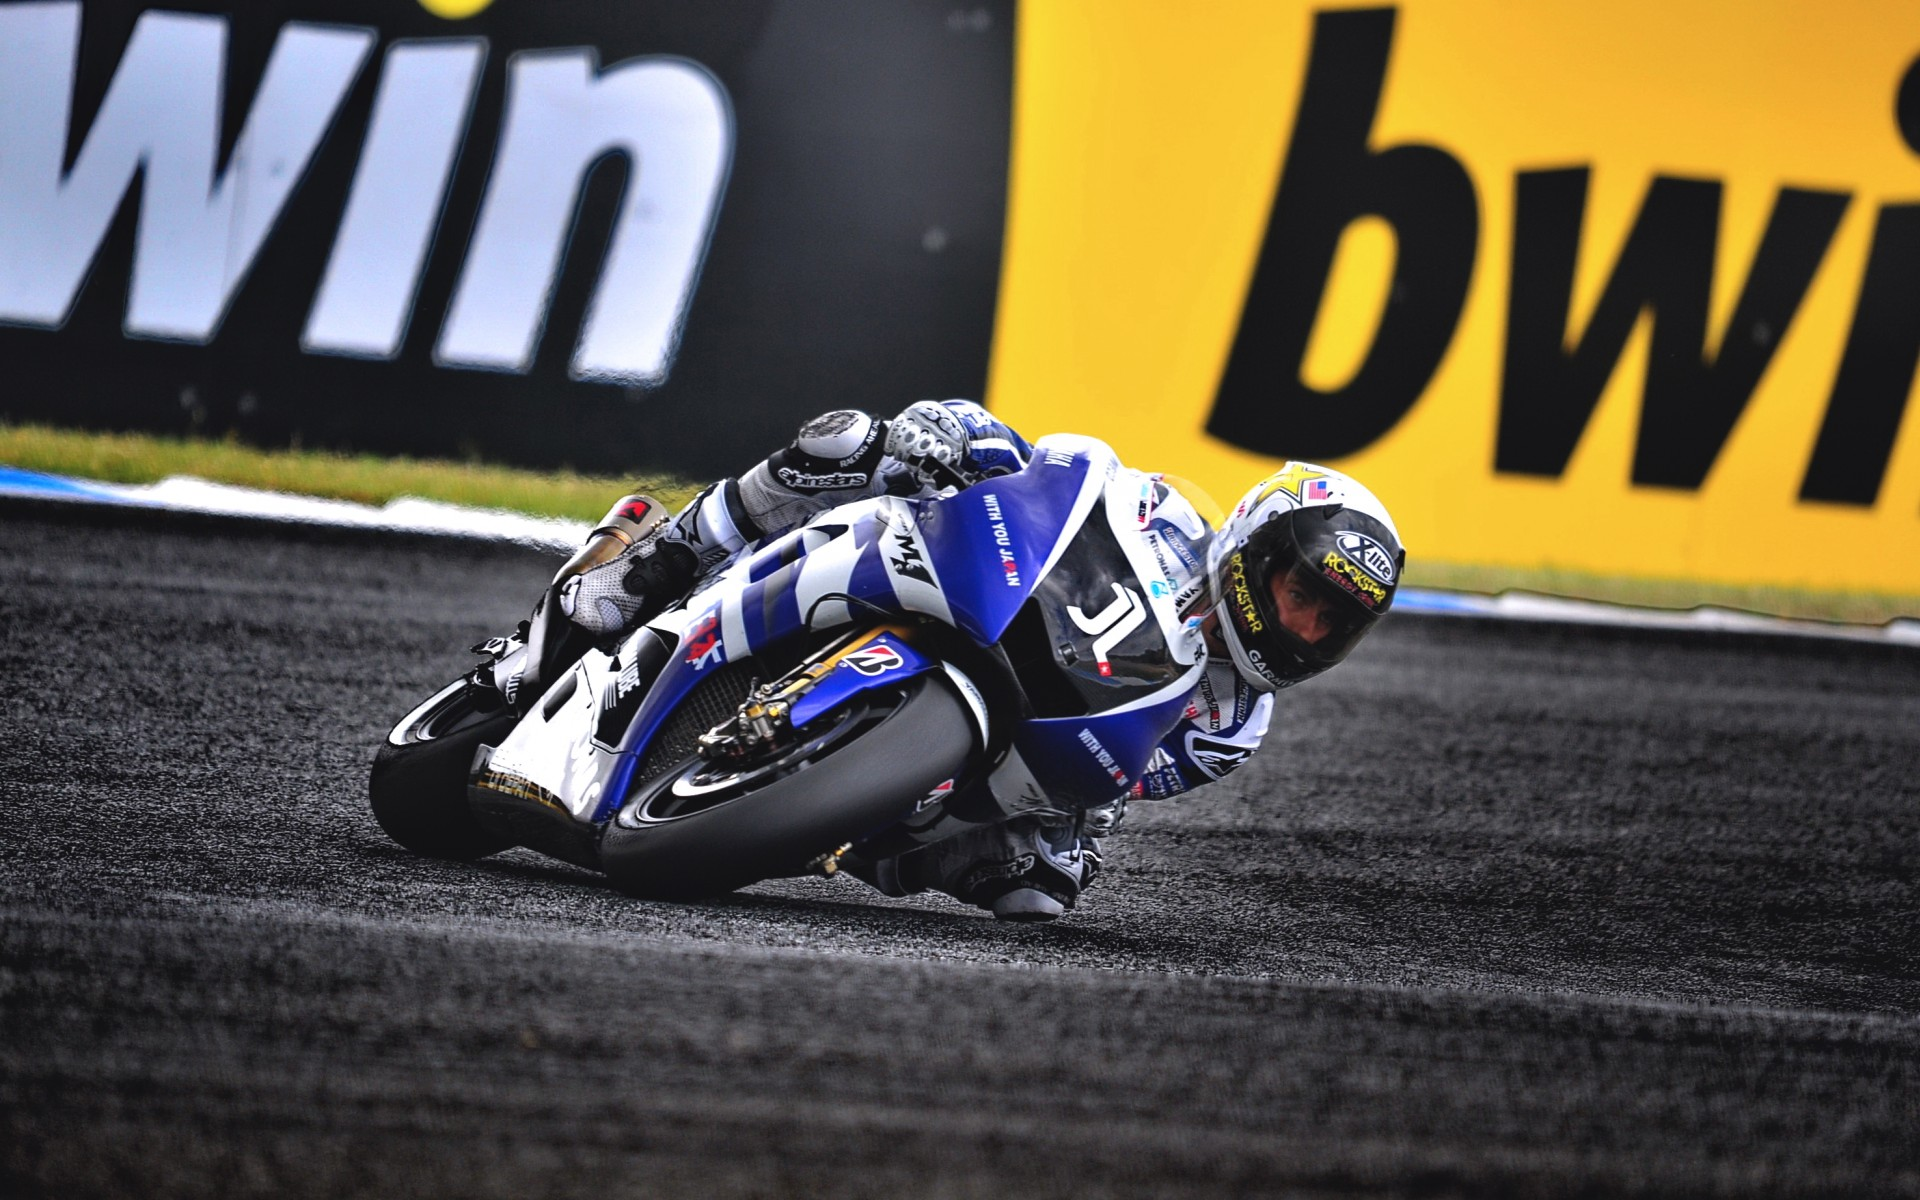 yamaha yzr m1 motorcycle motogp race racing wallpaper | 1920x1200